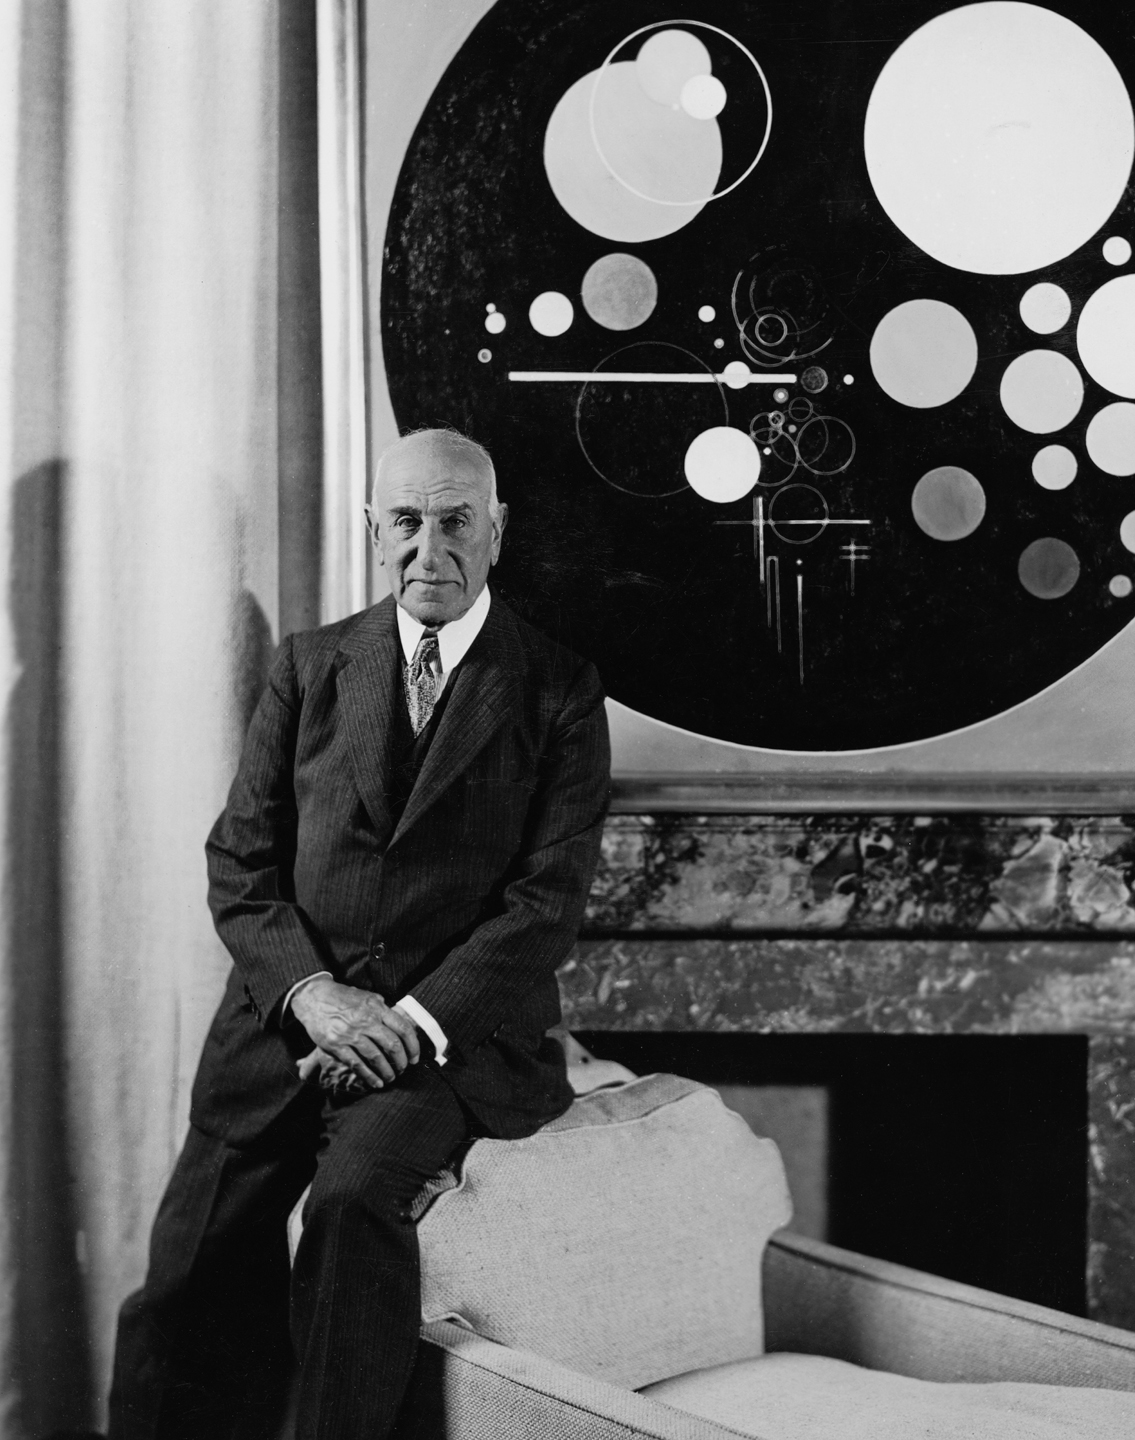 Solomon R. Guggenheim at the Plaza Hotel, New York, c. 1937, with Rudolf Bauer's Andante (from Tetraptychon: Symphony in Four Movements, 1926–30). Photo: Underwood and Underwood Studios, New York, courtesy HvRF Archives.